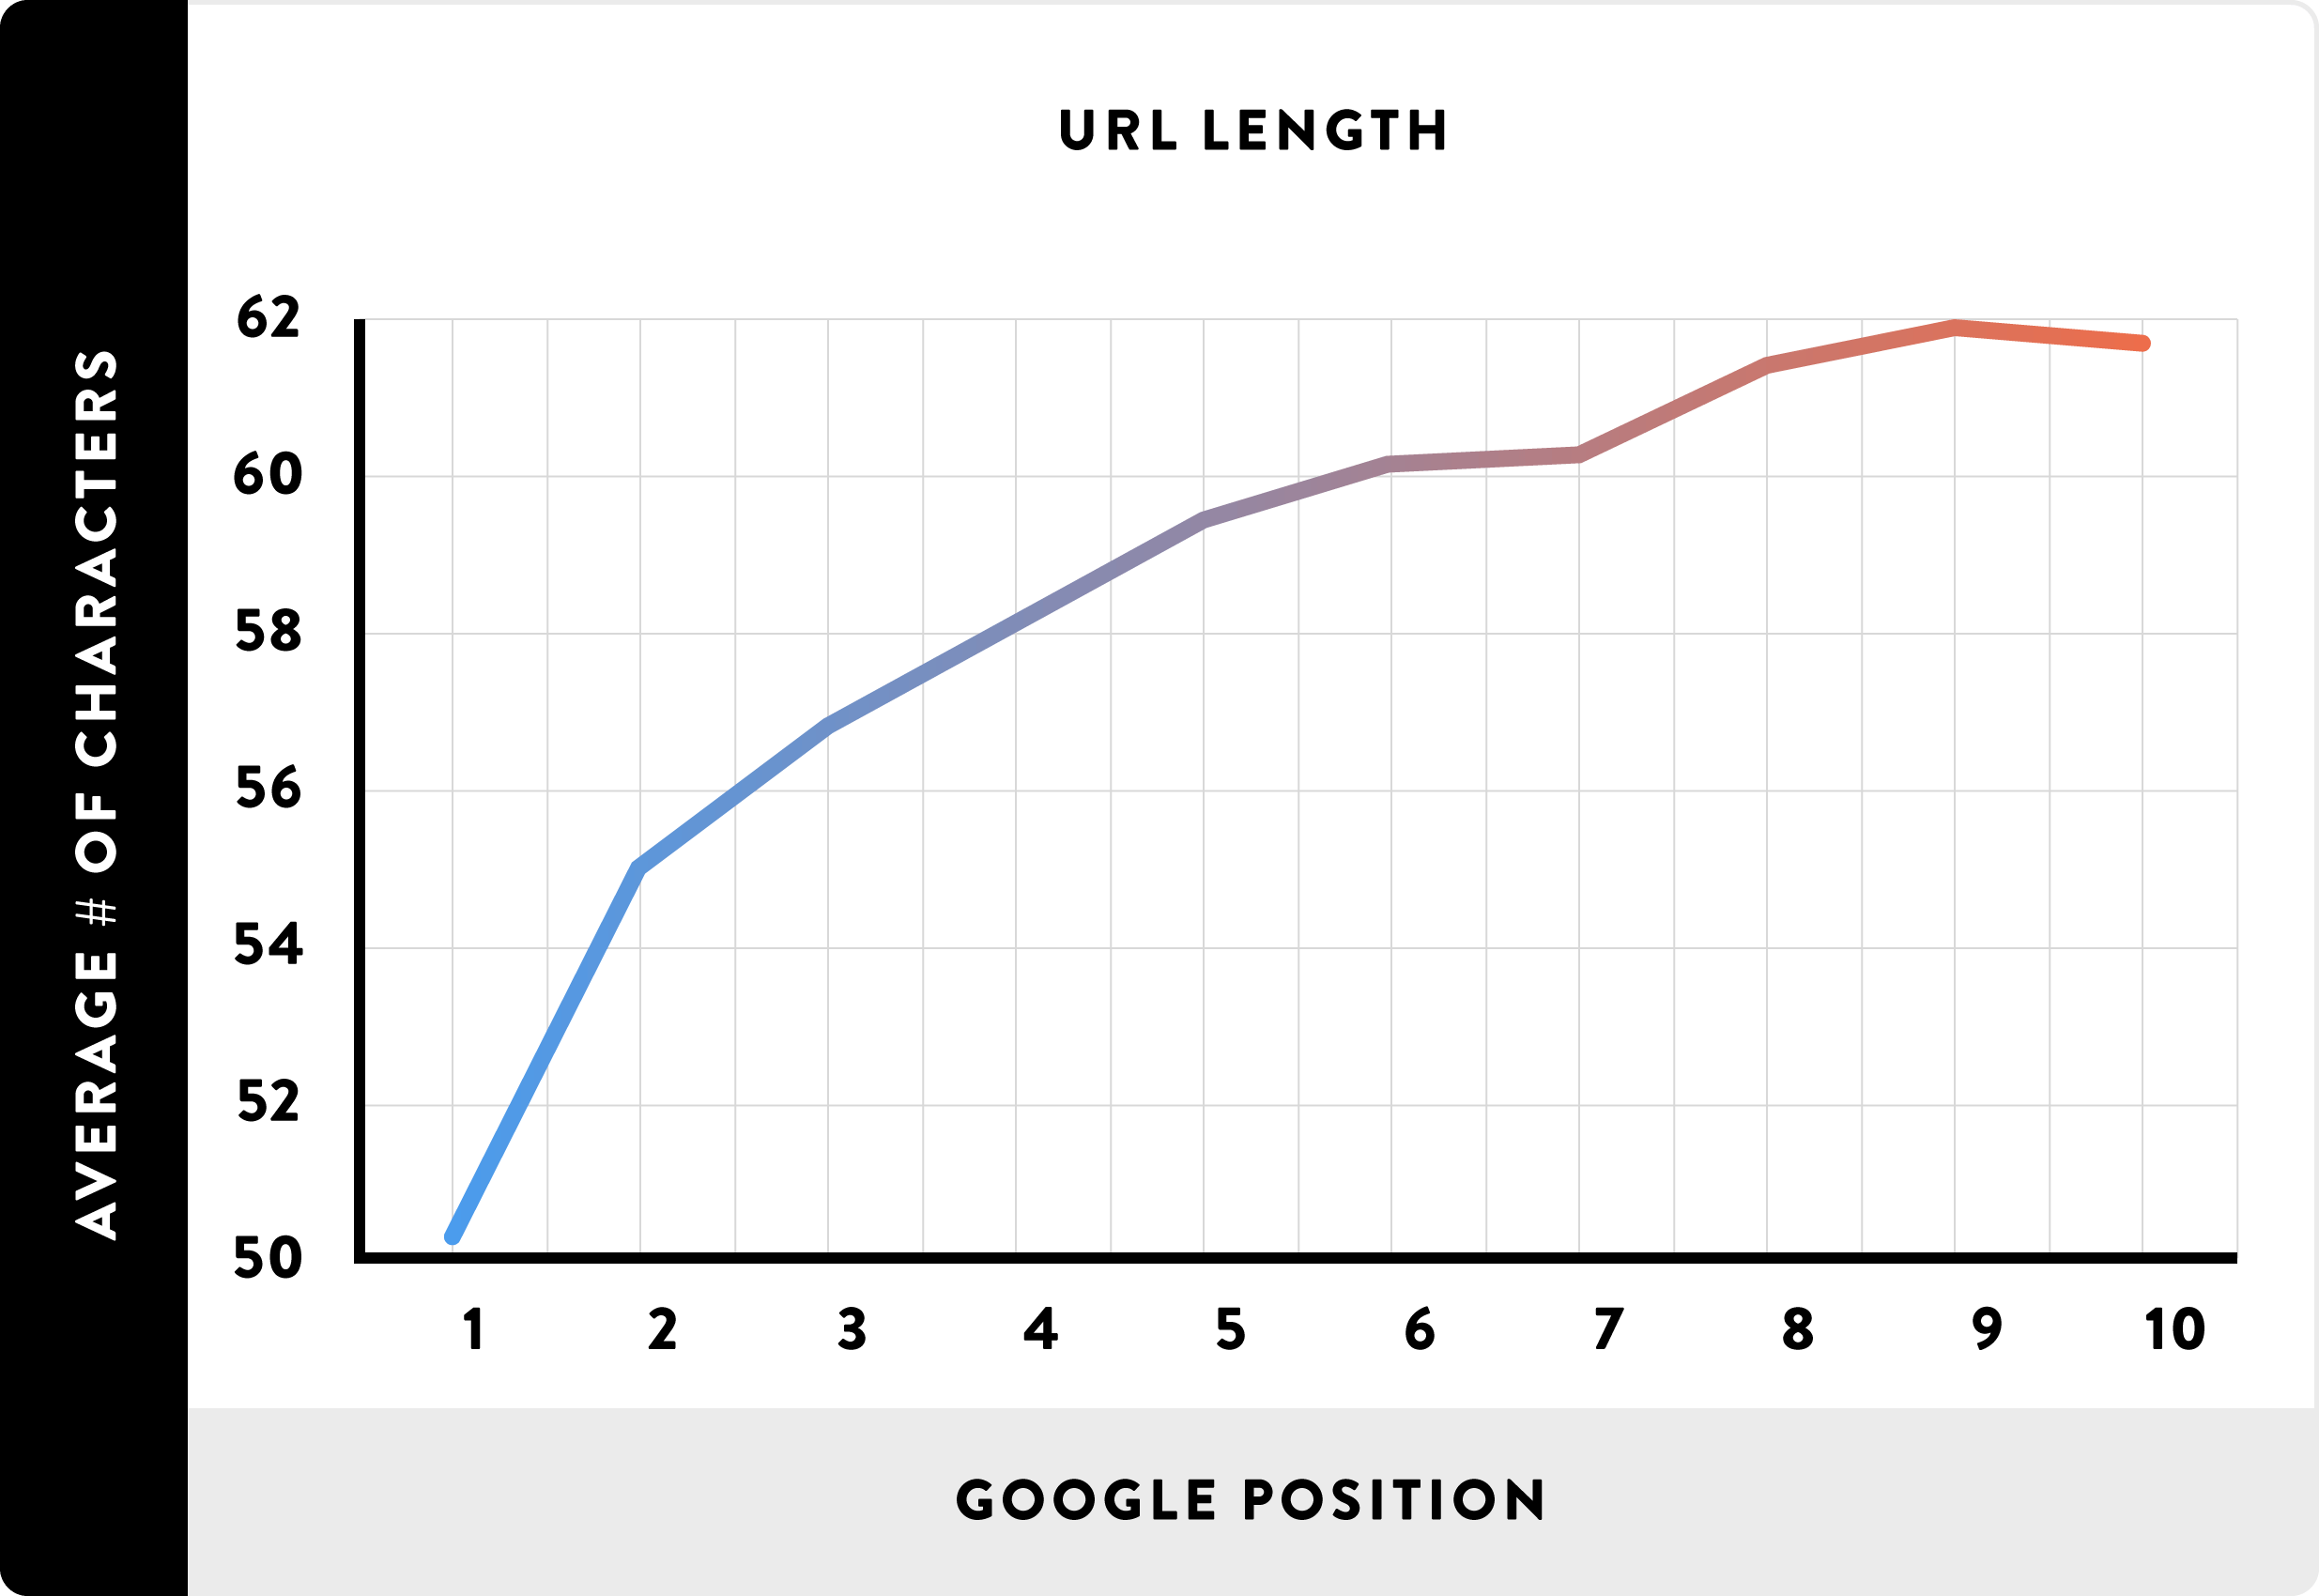 Shorter URLs tend to perform best in Google search